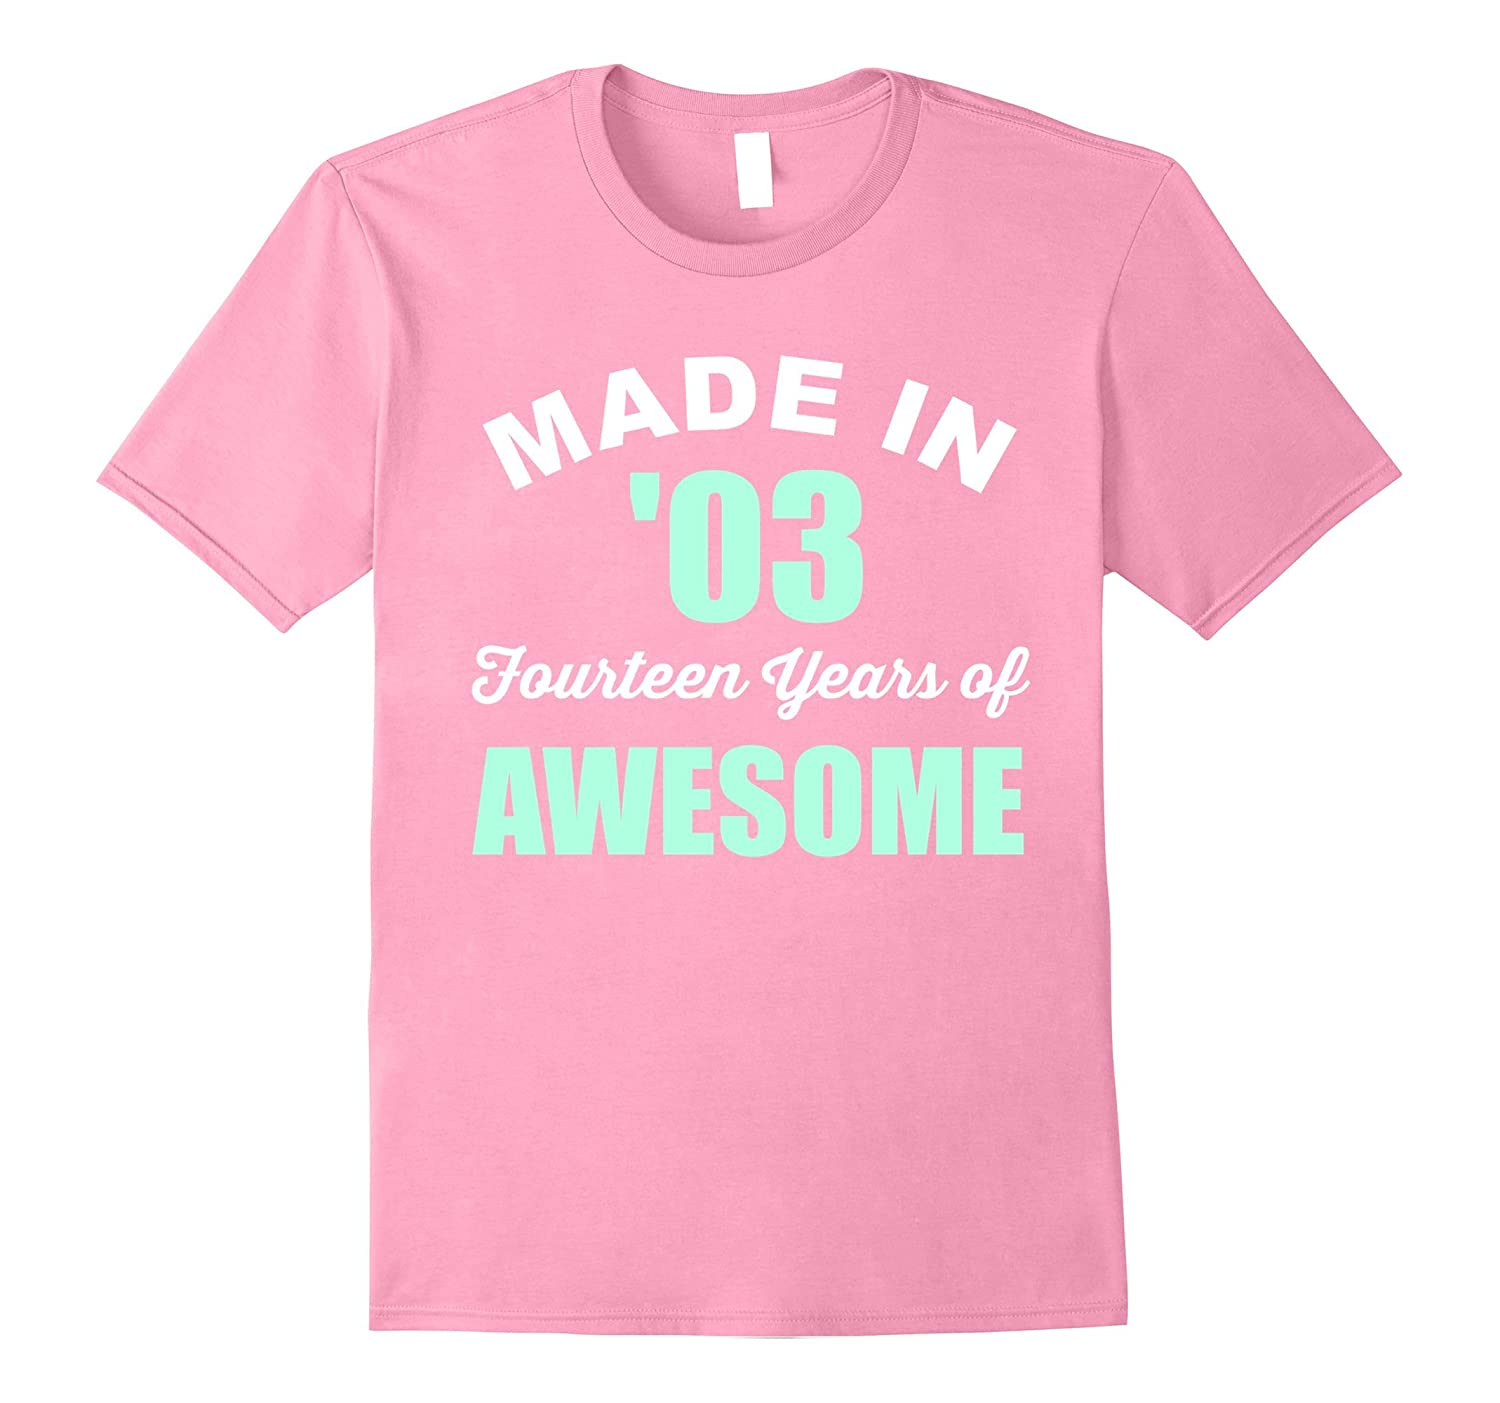 Birthday Girl Gifts 14 Year Old Made In 2003 Fun T Shirt ANZ